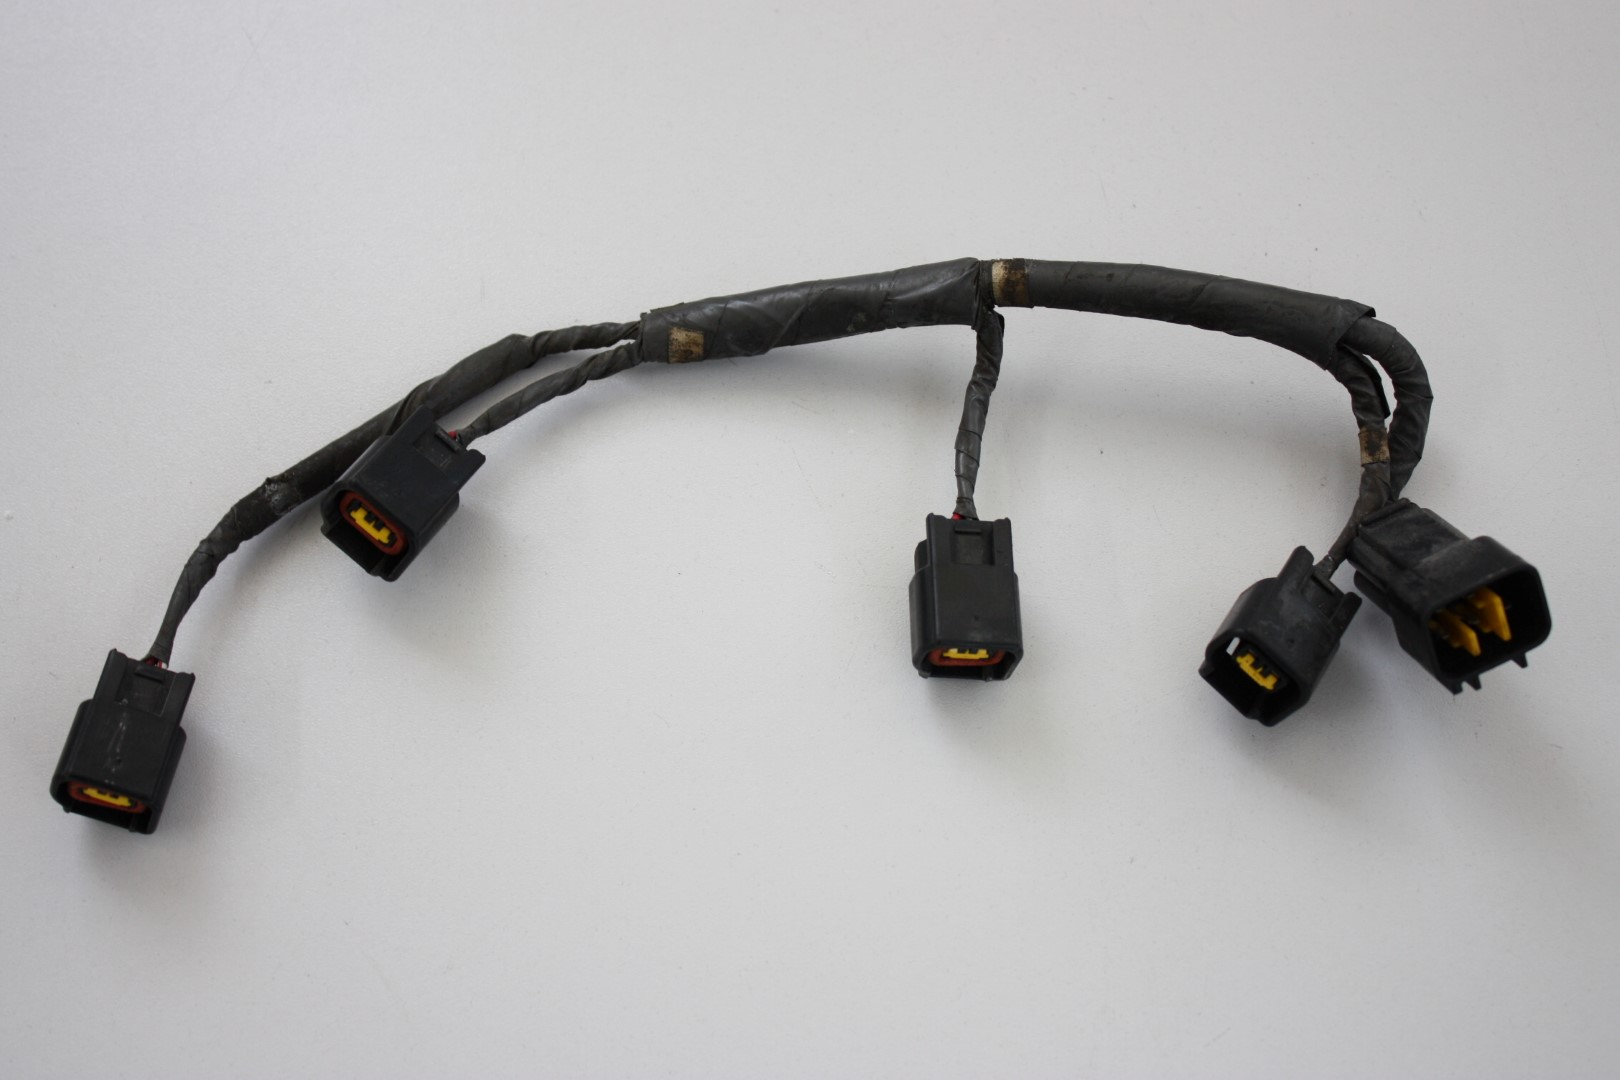 Auto Ignition Coil Wiring Harness Loom Buy Ignition Coil Wire